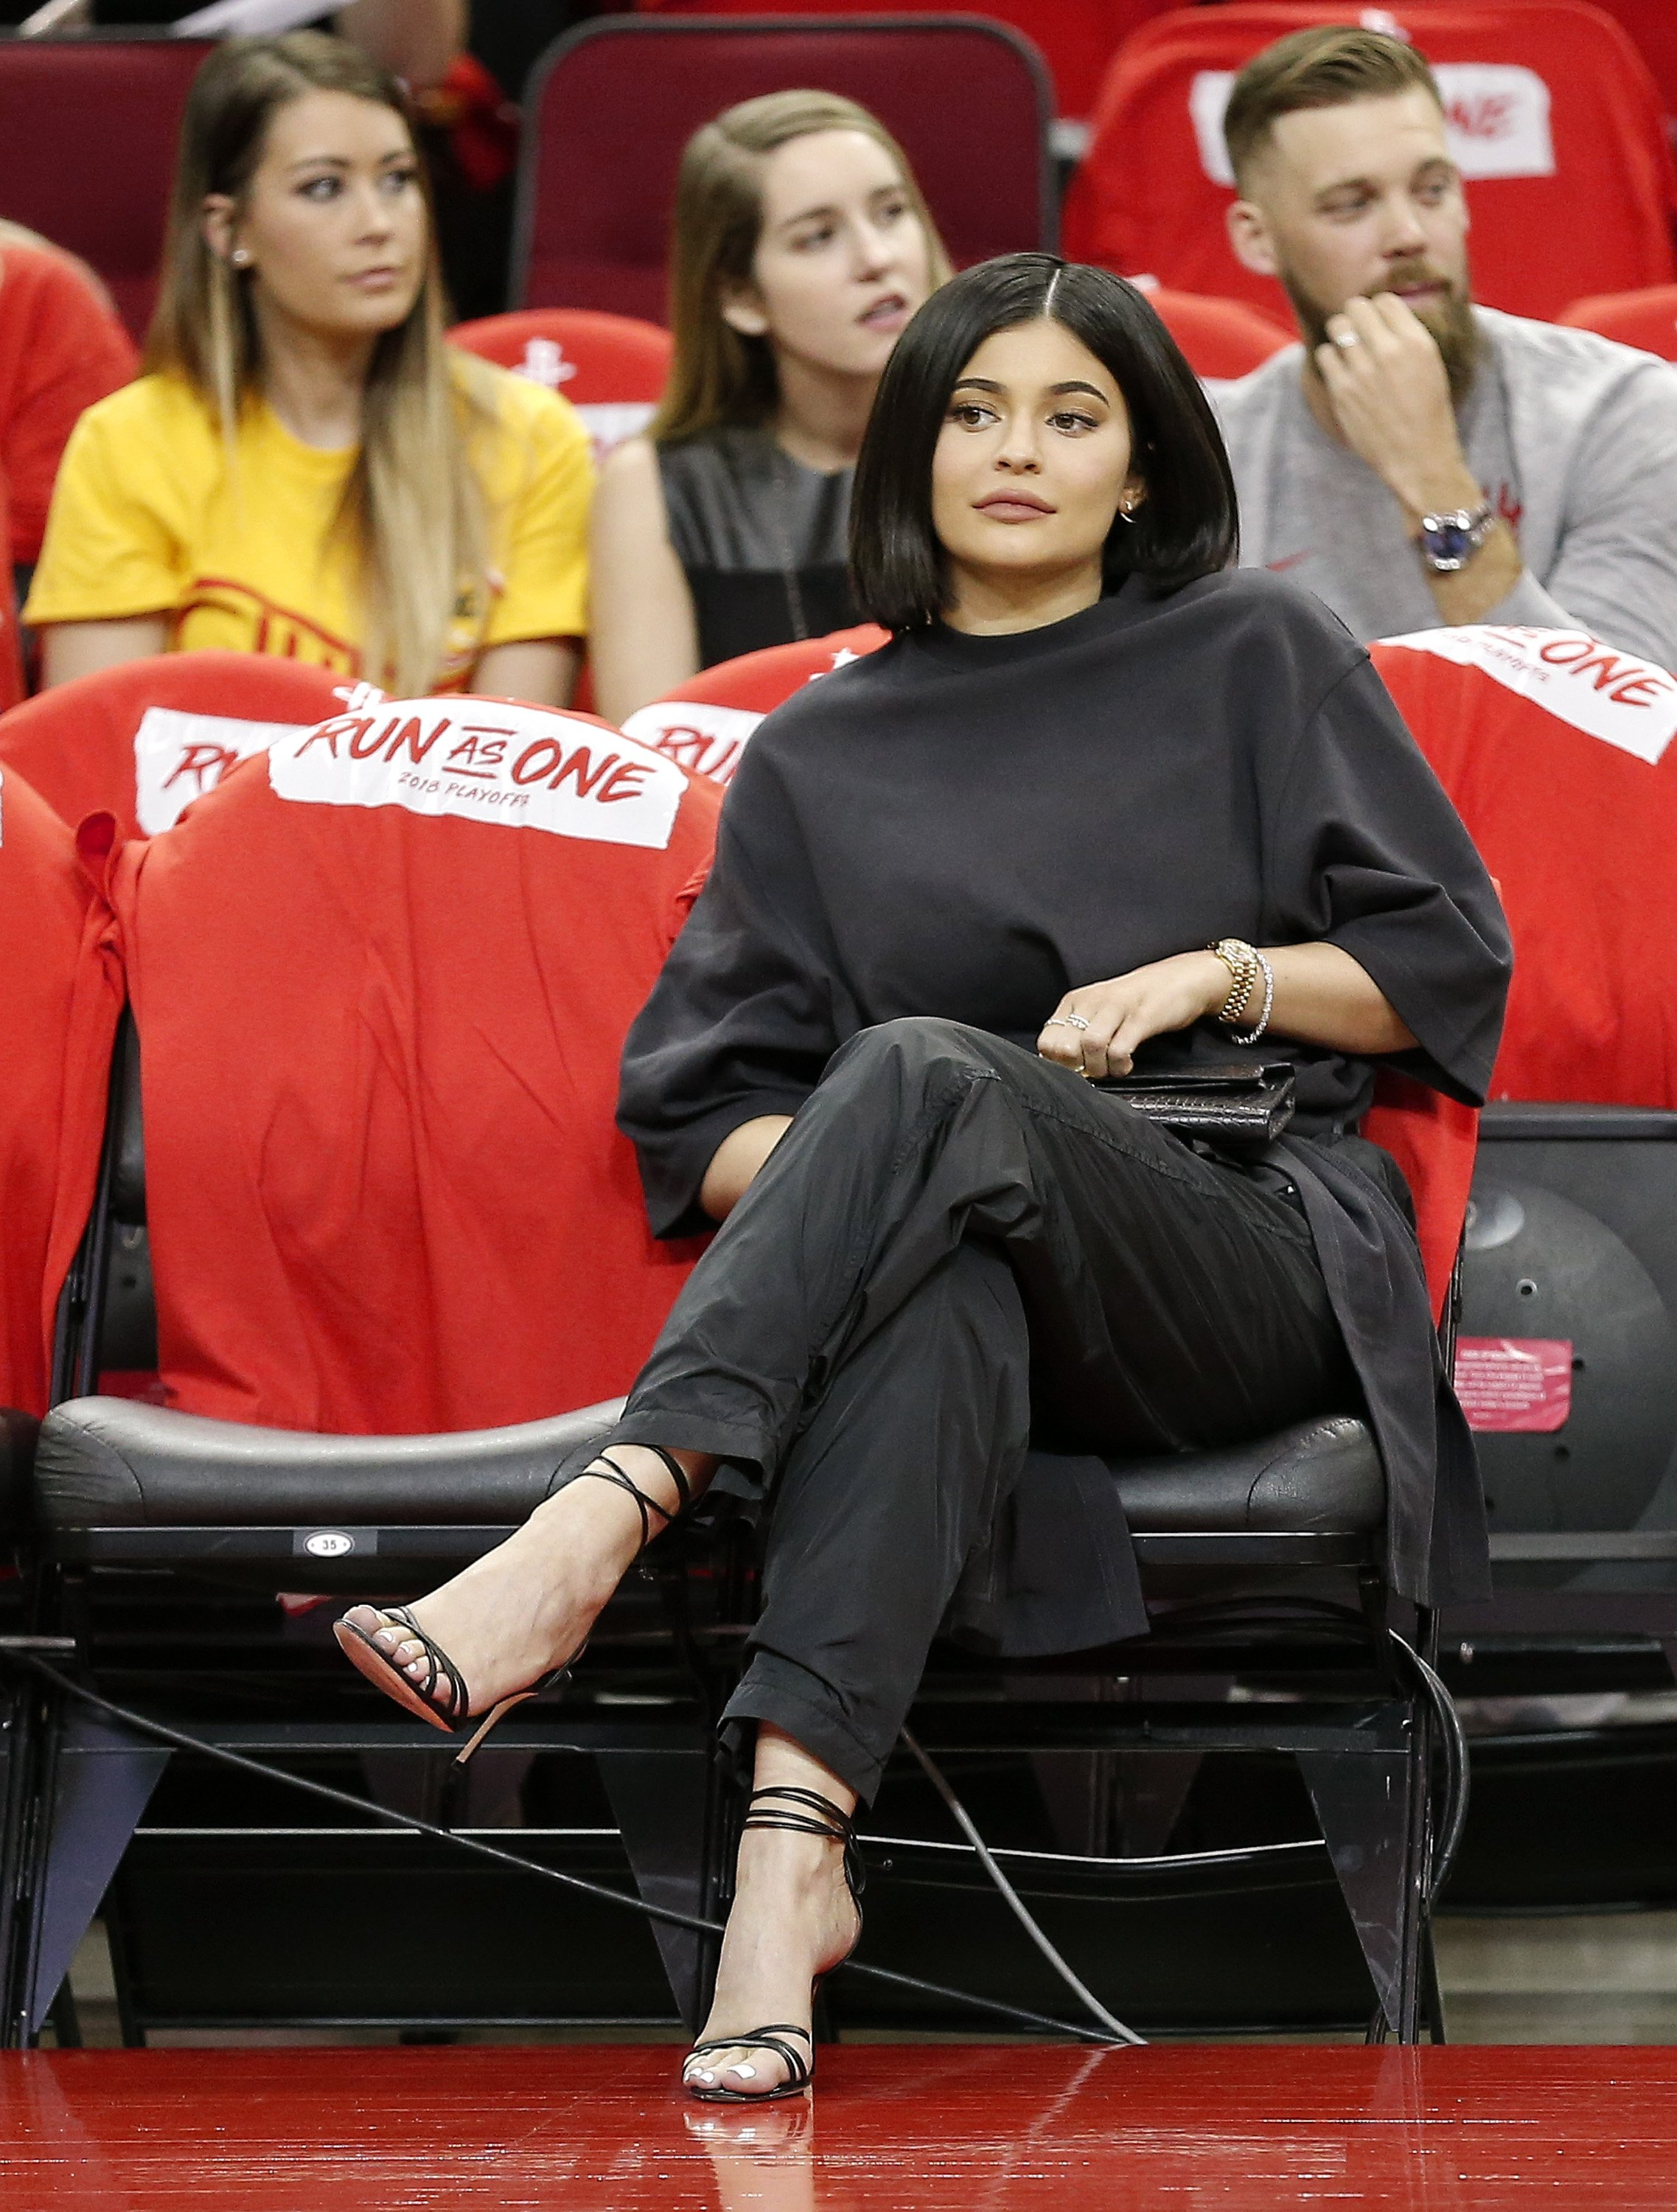 Kyle Jenner sits courtside before Game Two of the first round of the Western Conference playoffs at Toyota Center on April 18, 2018 in Houston, Texas | Photo: Getty Images